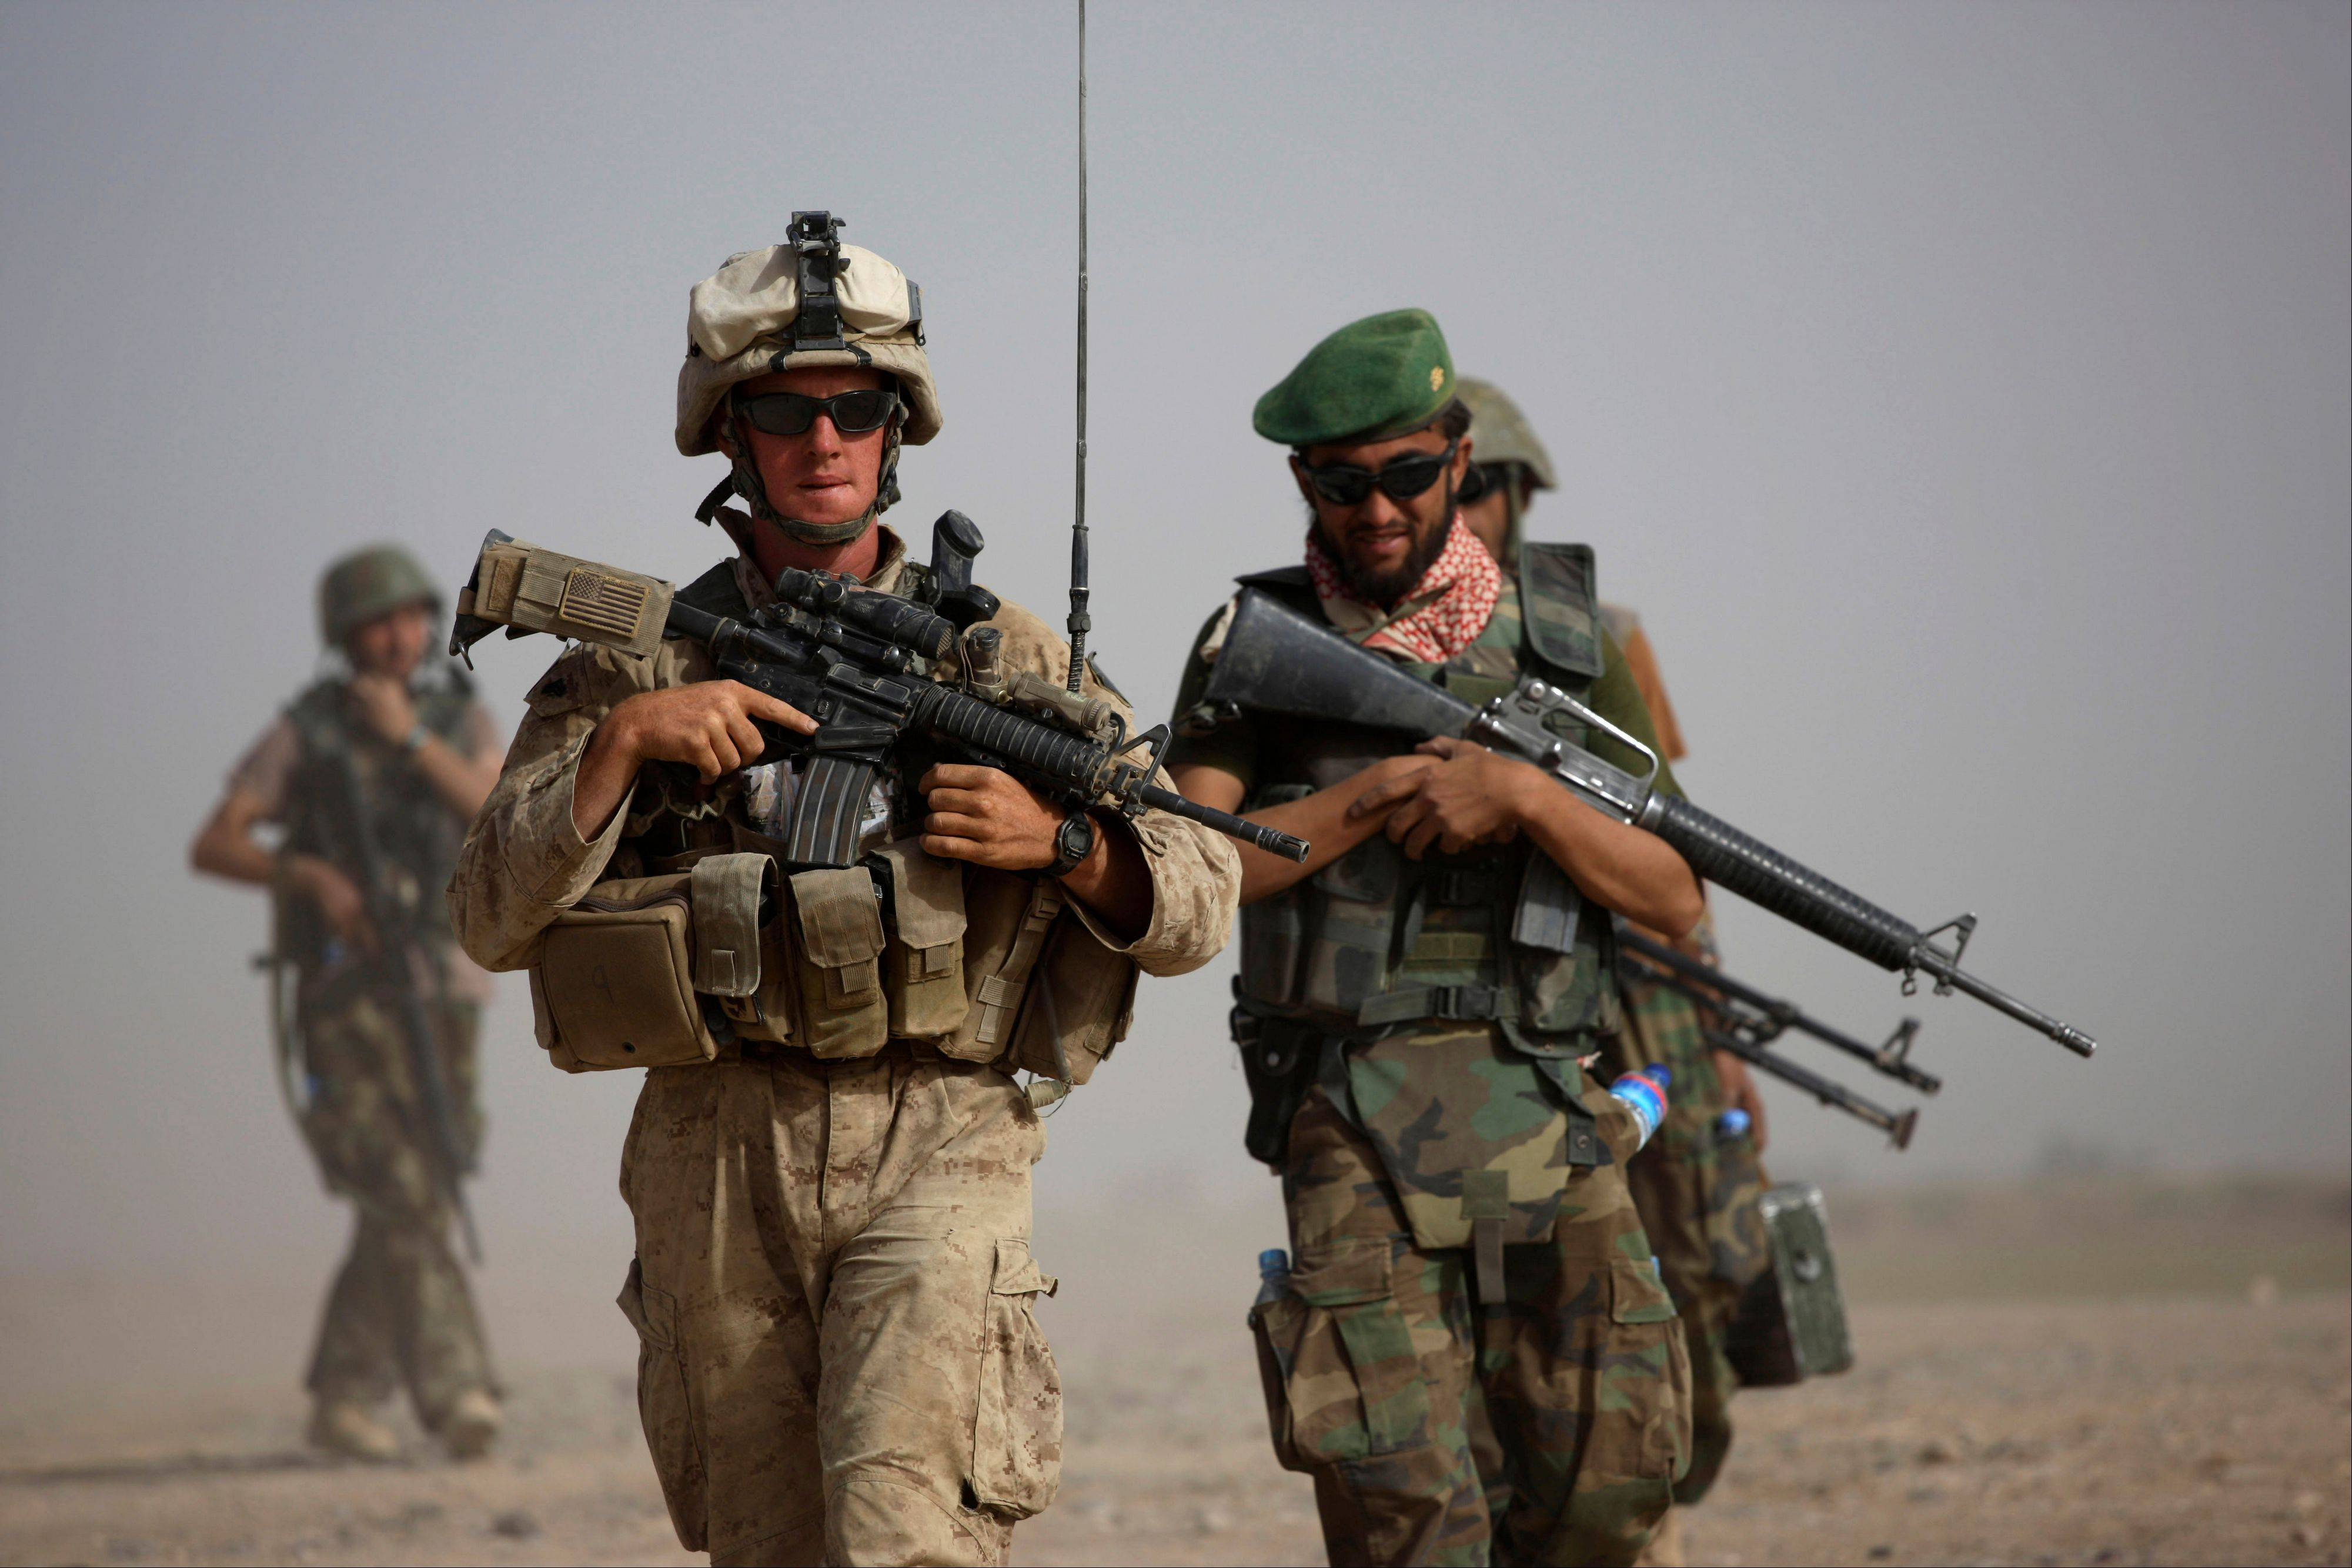 U.S. Marine squad leader Sgt. Matthew Duquette, left, of Warrenville, with Bravo Company, 1st Battalion 5th Marines walks with Afghan National Army Lt. Hussein, during in a joint patrol in Nawa district, Helmand province, southern Afghanistan. U.S. military officials have noted that Afghan security forces are dying in insider attacks along with foreign troops, but so far, the Afghan government has not provided statistics on the number killed.